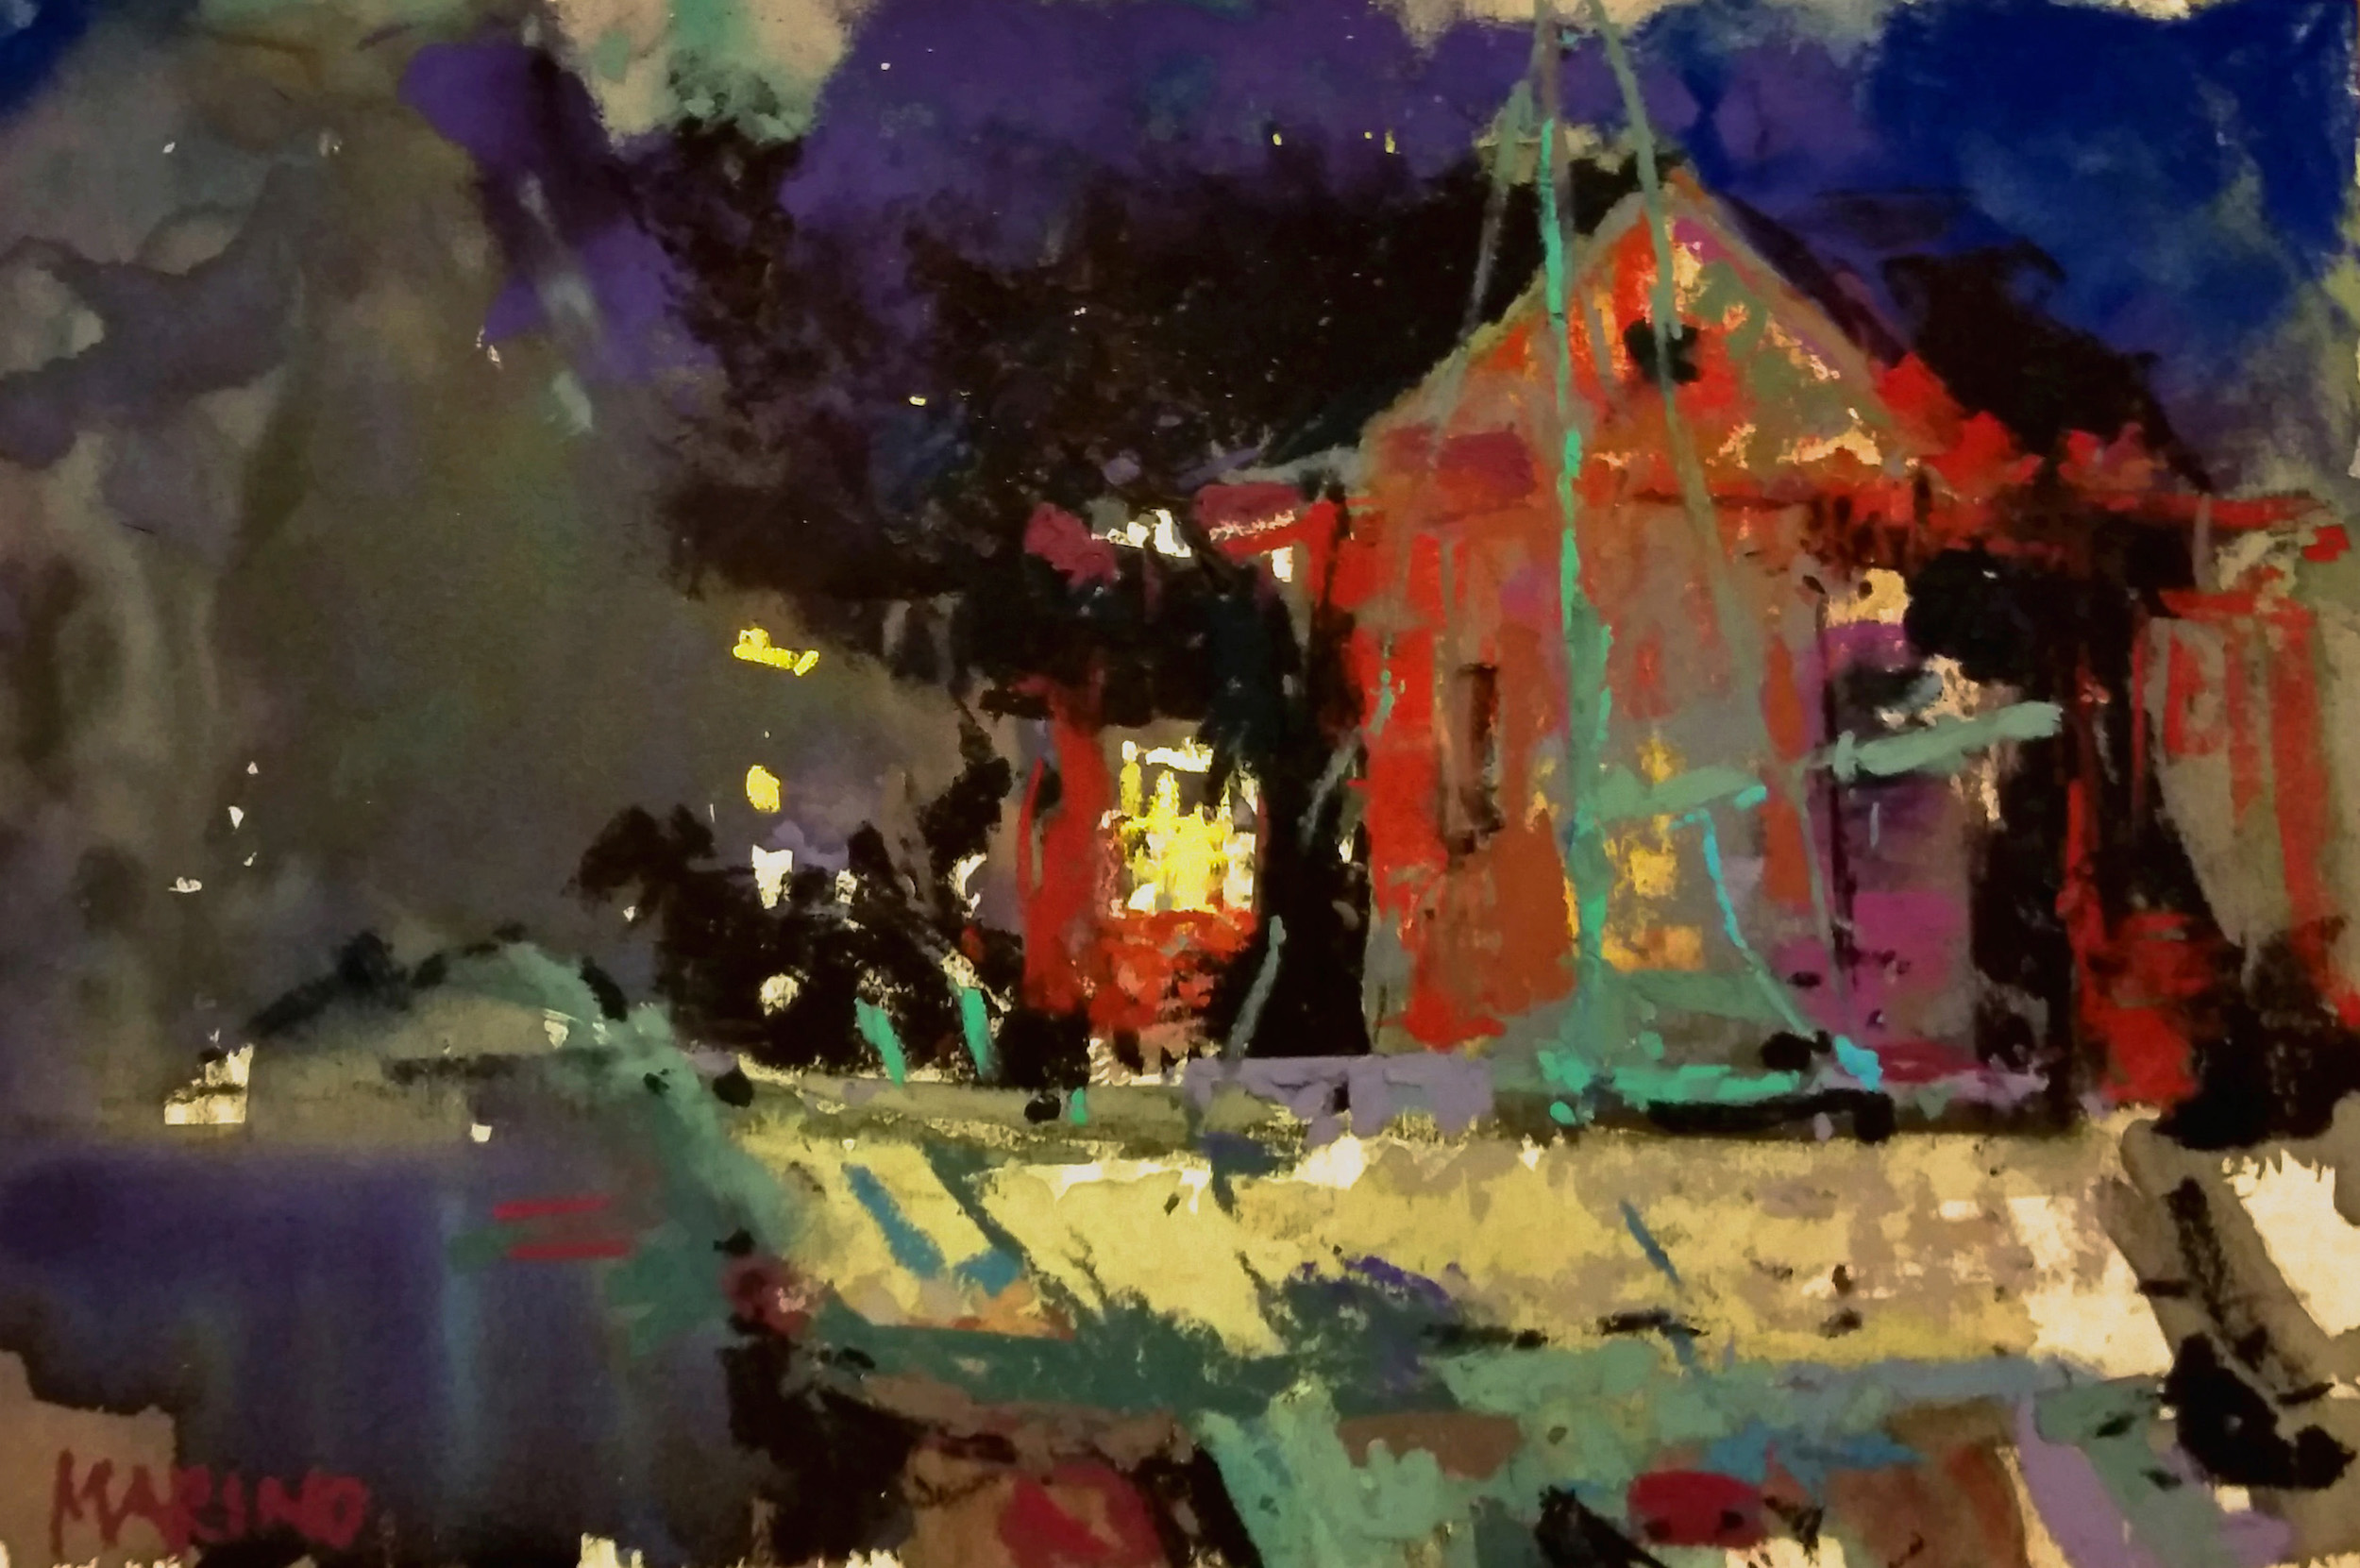 "Maria Marino,"" Nocturne-Charles St,"" pastel over watercolor on UART 320 board, 6 x 9. Sold. Painted a dry docked boat in boatyard (nocturne) plein air at Solomon's Plein Air event."